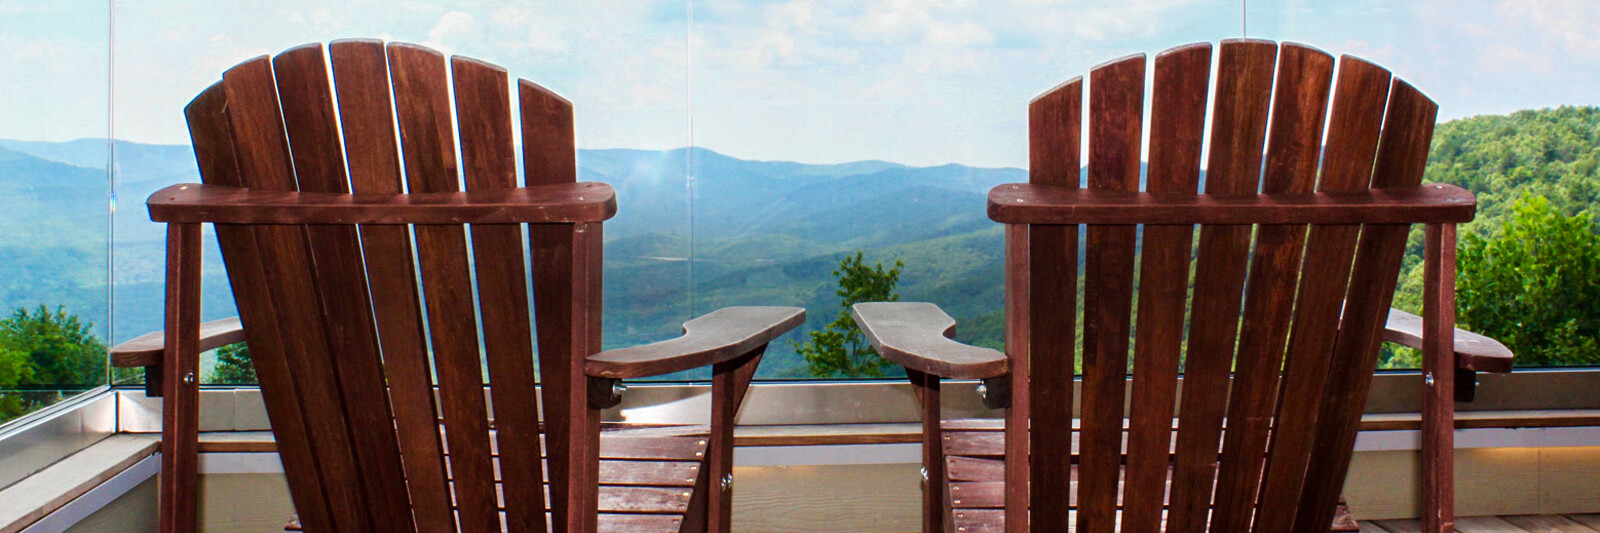 Amicalola Falls Adventure Lodge Packages Specials Promotions 1